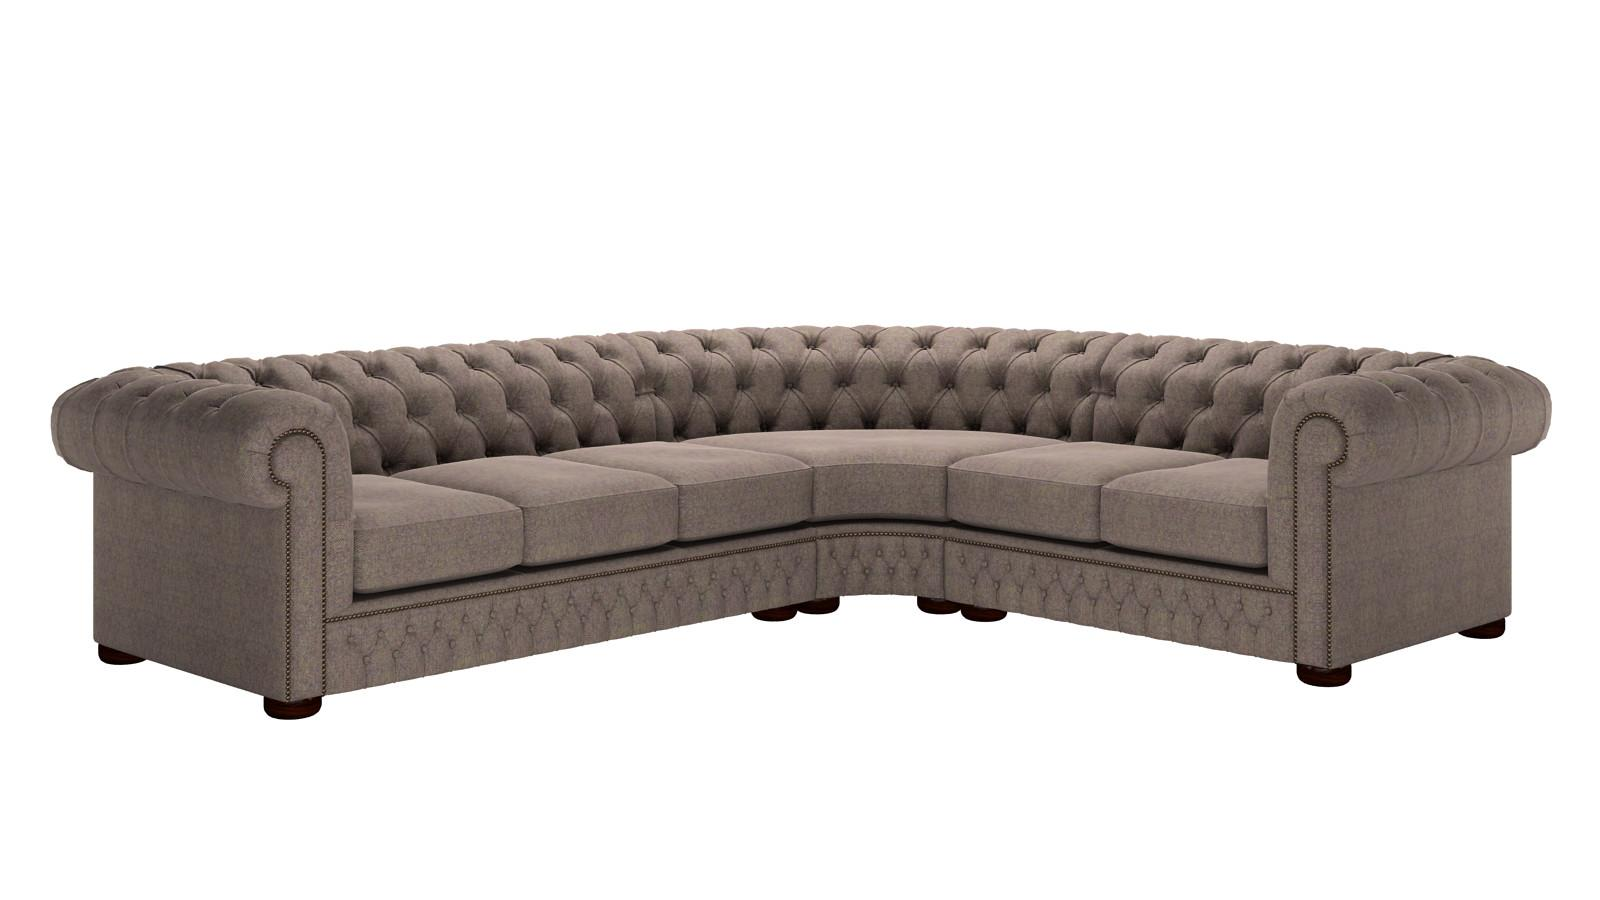 Choose Sofa Upholstered Sofas